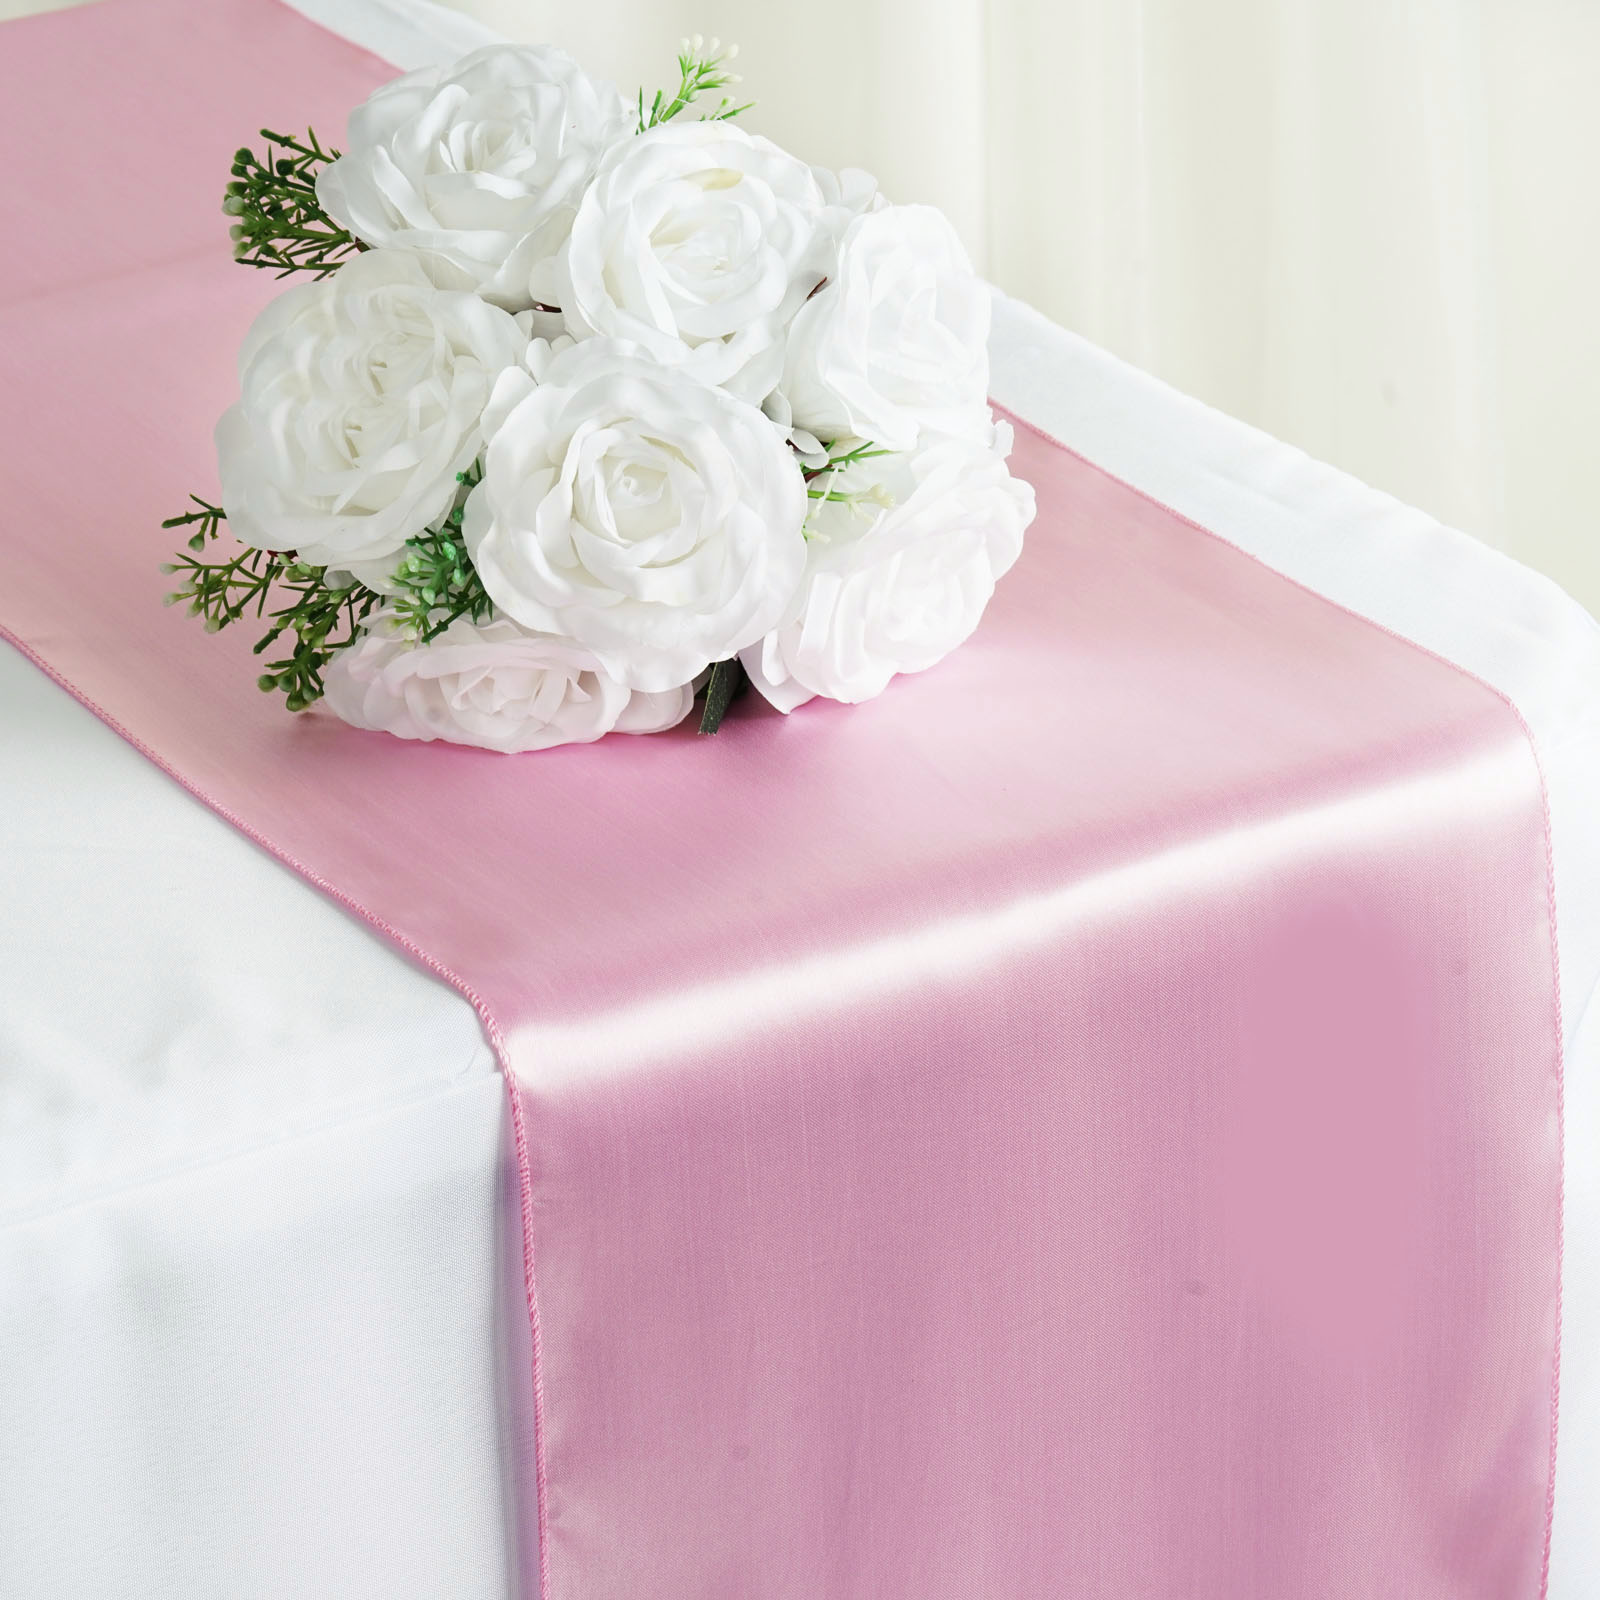 Wedding Decorations For Sale.Details About Pink Satin 12x108 Table Runner Wedding Party Catering Dinner Decorations Sale